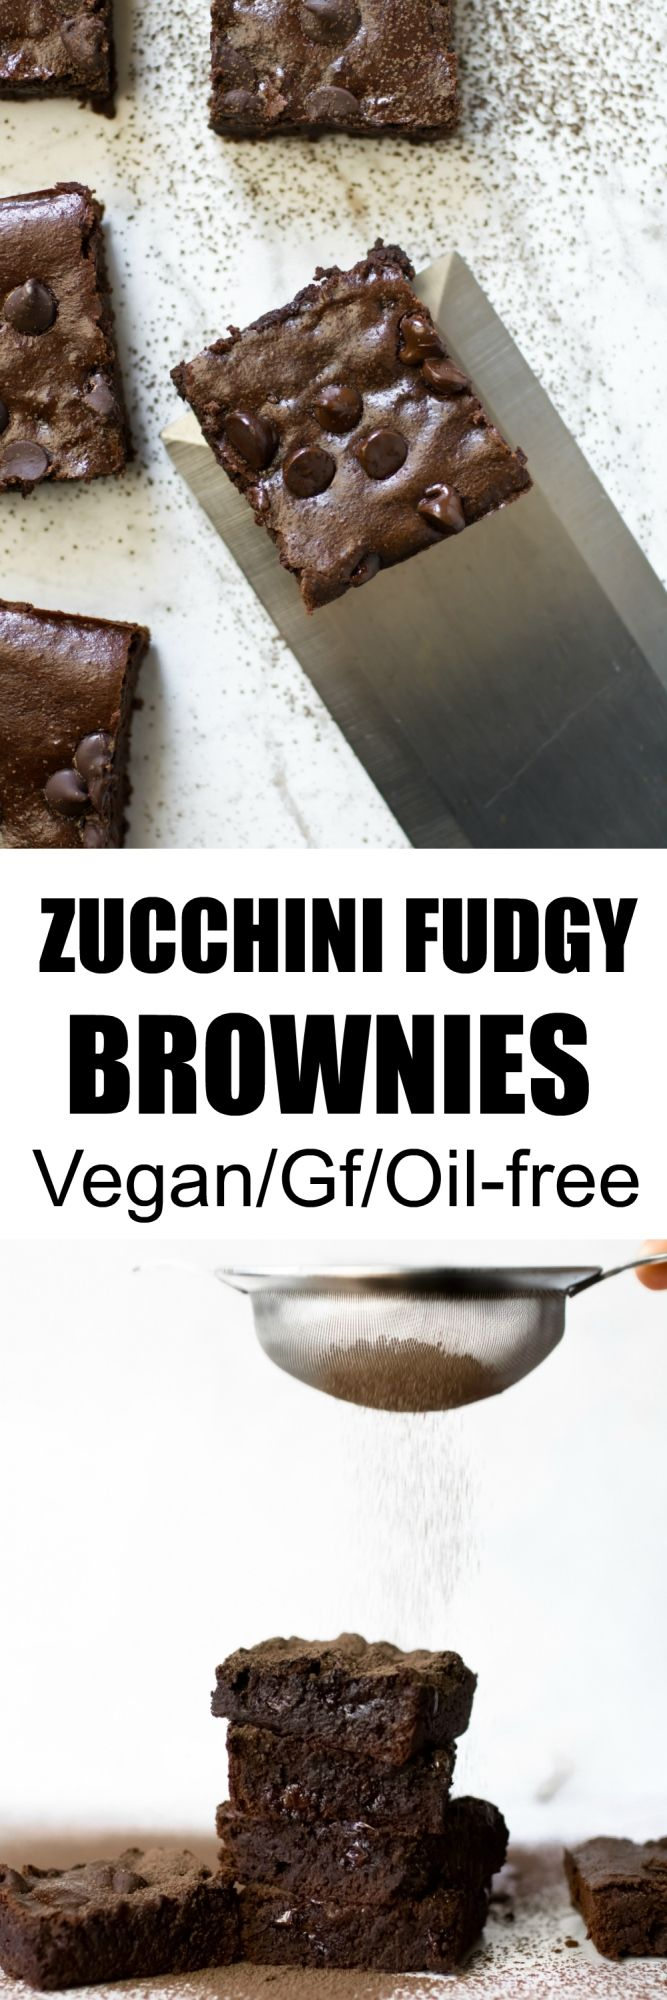 Make these amazing Vegan and Gluten-free Zucchini Fudgy Brownies with just 7 ingredients! Oil-free, so rich, decadent and fudgy...nobody would ever know there is a hidden veggie! via @thevegan8